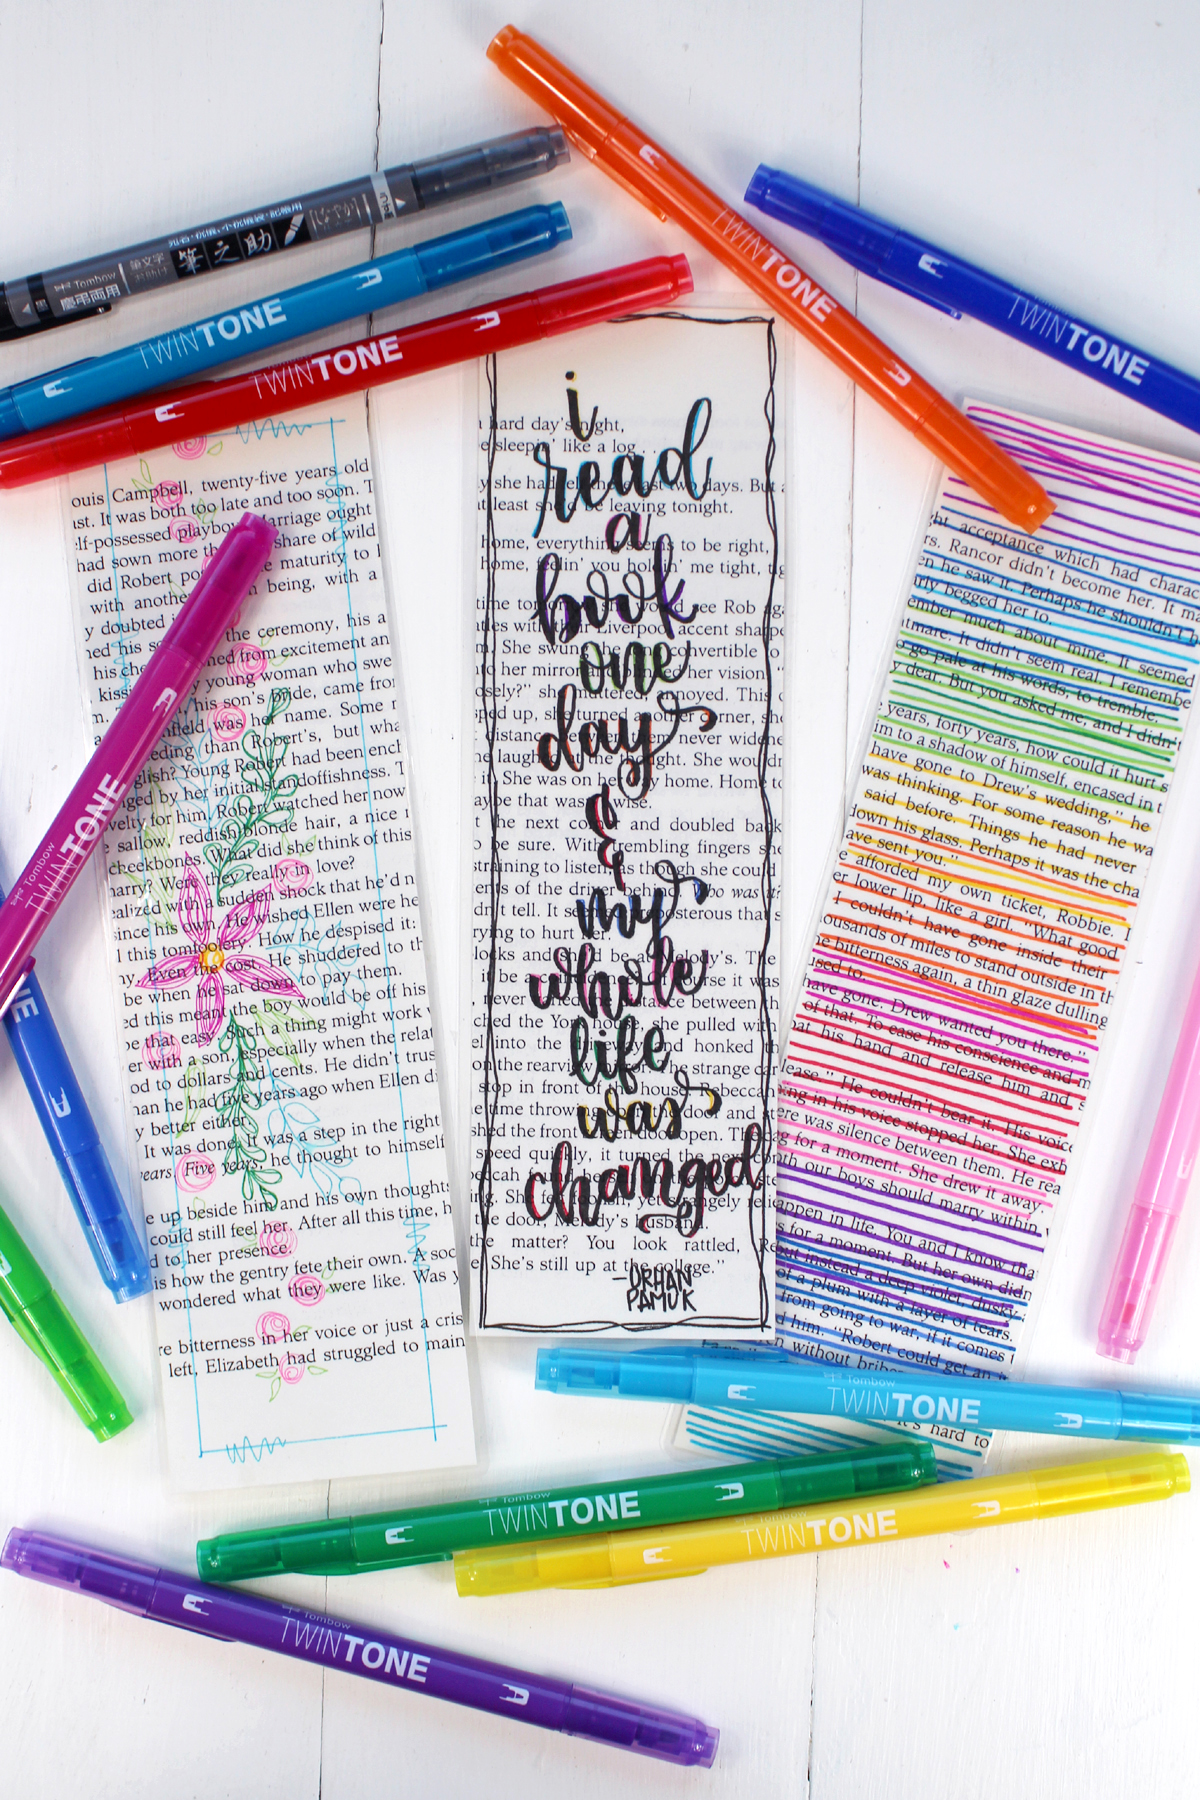 Give each student a precut book page and have them decorate them and write their name on the back in pencil. Then gather them and laminate them. Take them a step further and have students punch a hole and add a yarn tassel. Enjoy!